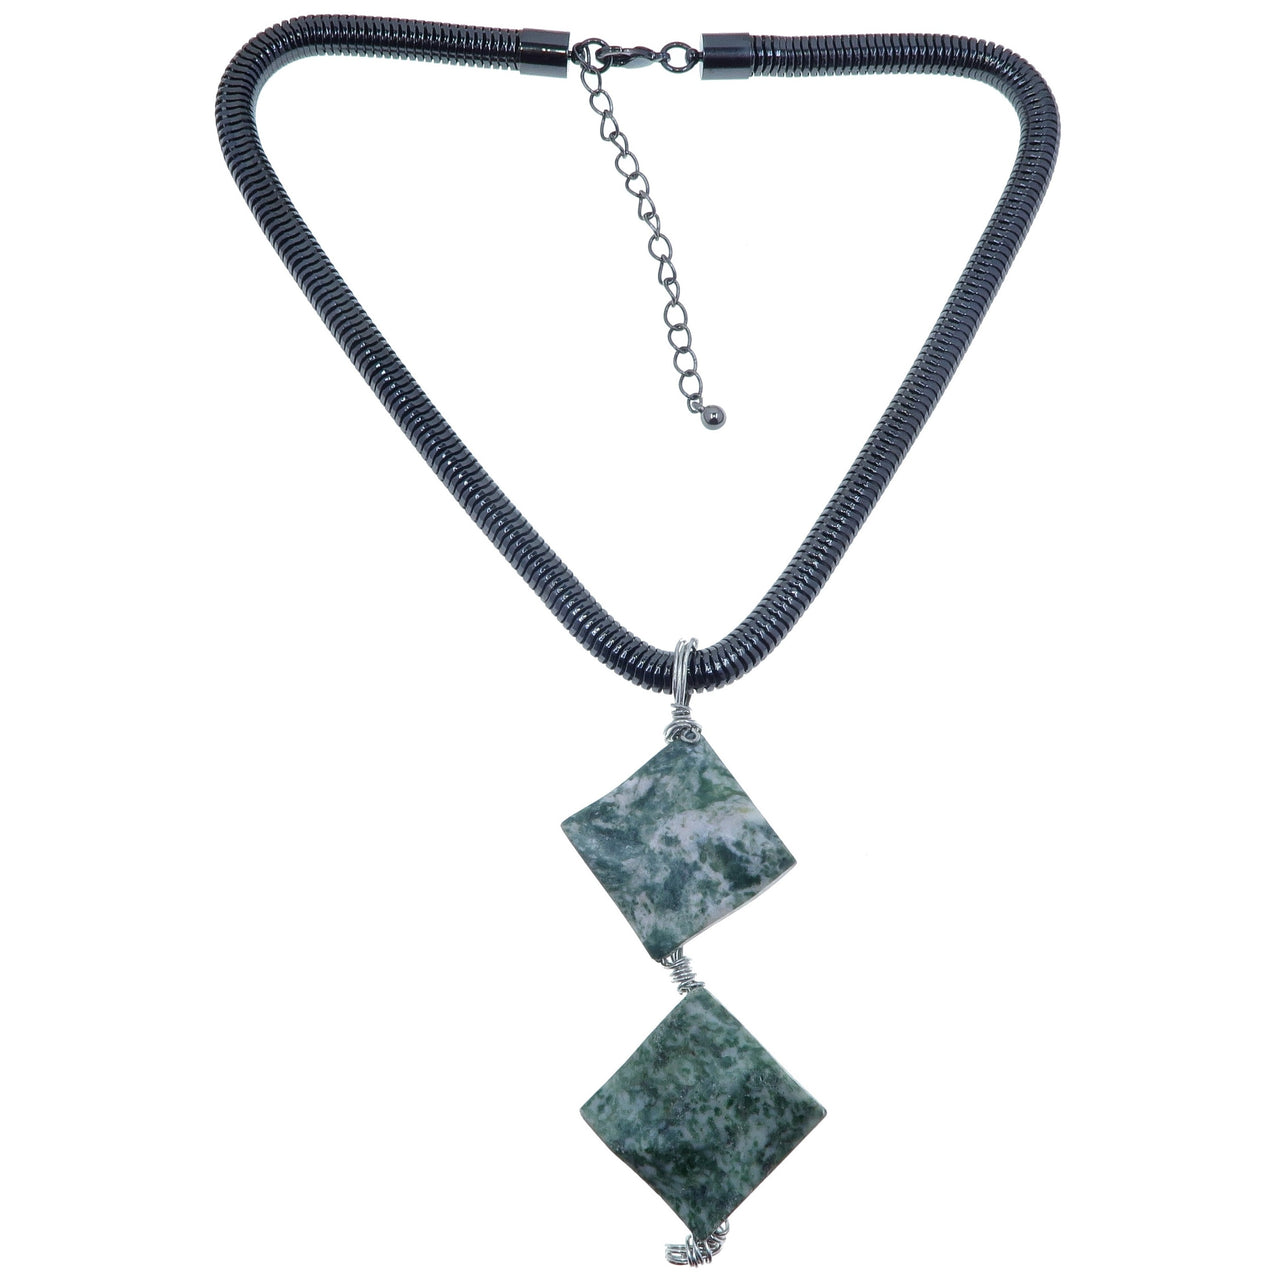 "Agate Tree Necklace 17-20"" Specialty One-of-Kind Thick Gunmetal Green Stone Statement S01"